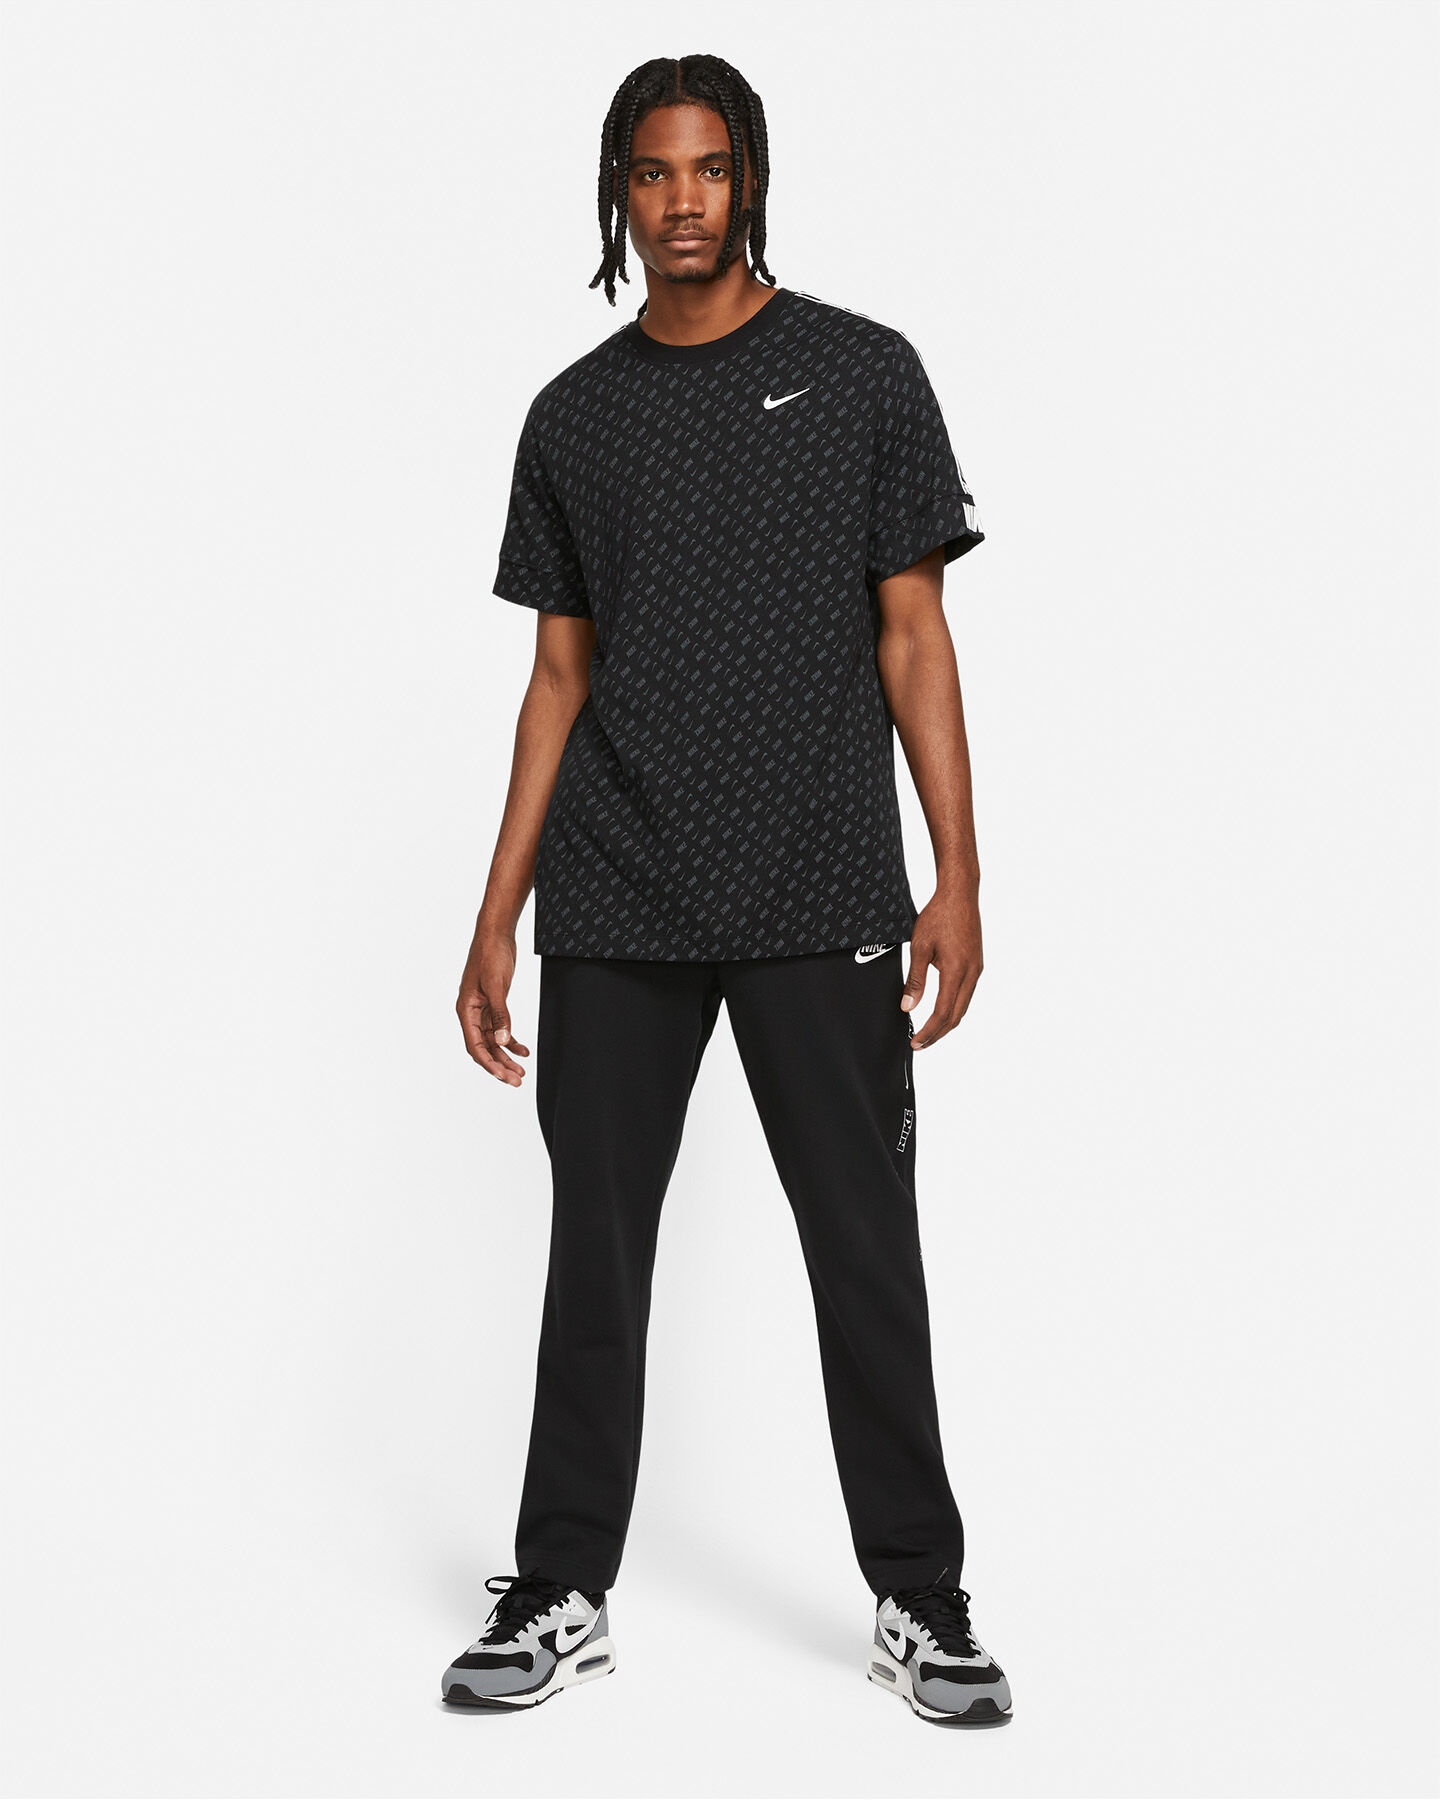 T-Shirt NIKE REPEAT ALL OVER M S5270641 scatto 4